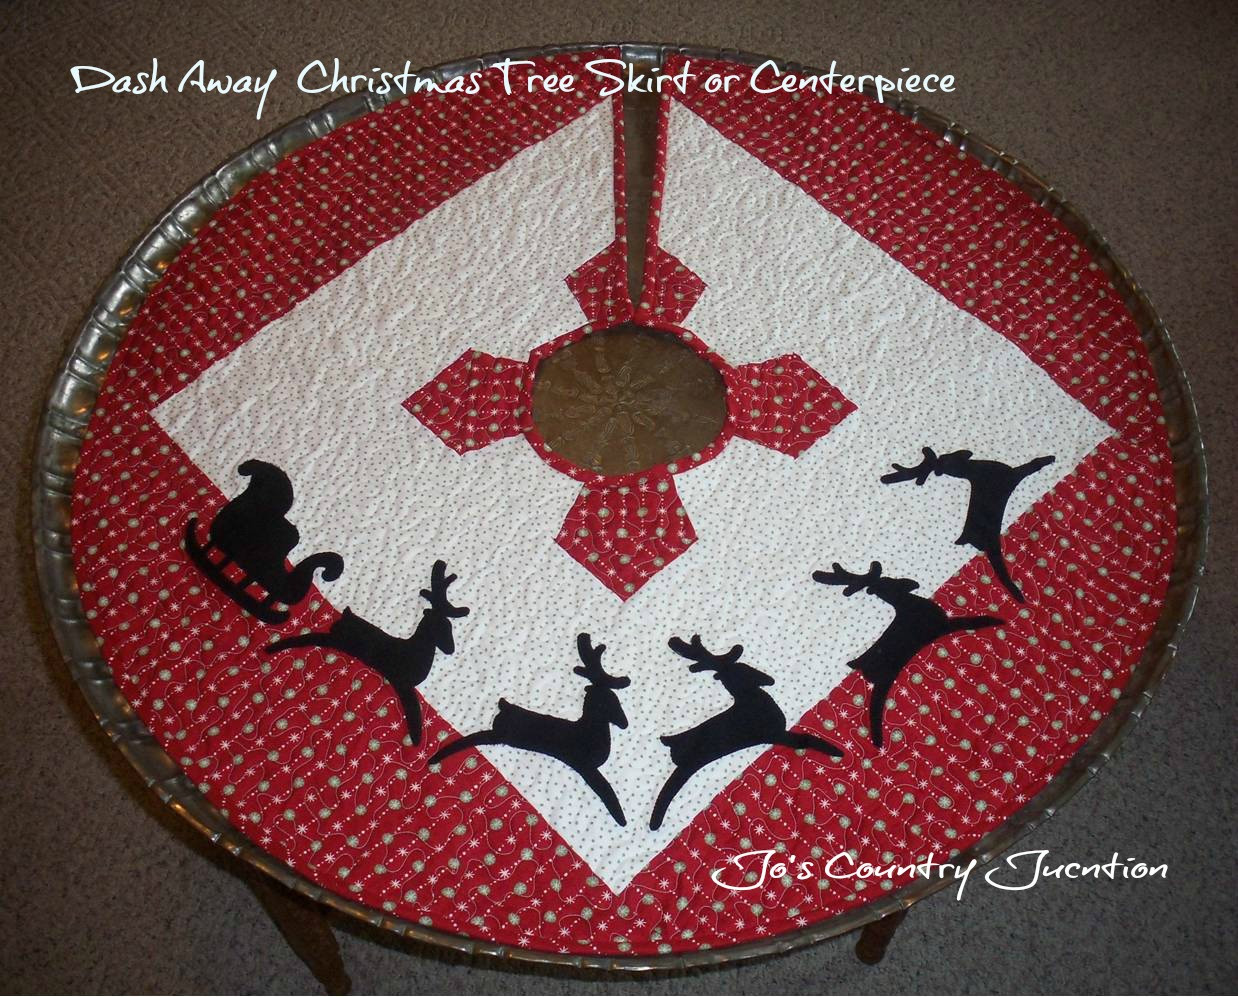 Tree Skirt Pattern Inspirational Friday Finish Dash Away Christmas Tree Skirt Of Tree Skirt Pattern Elegant Christmas Goose Tree Skirt & Card Holder